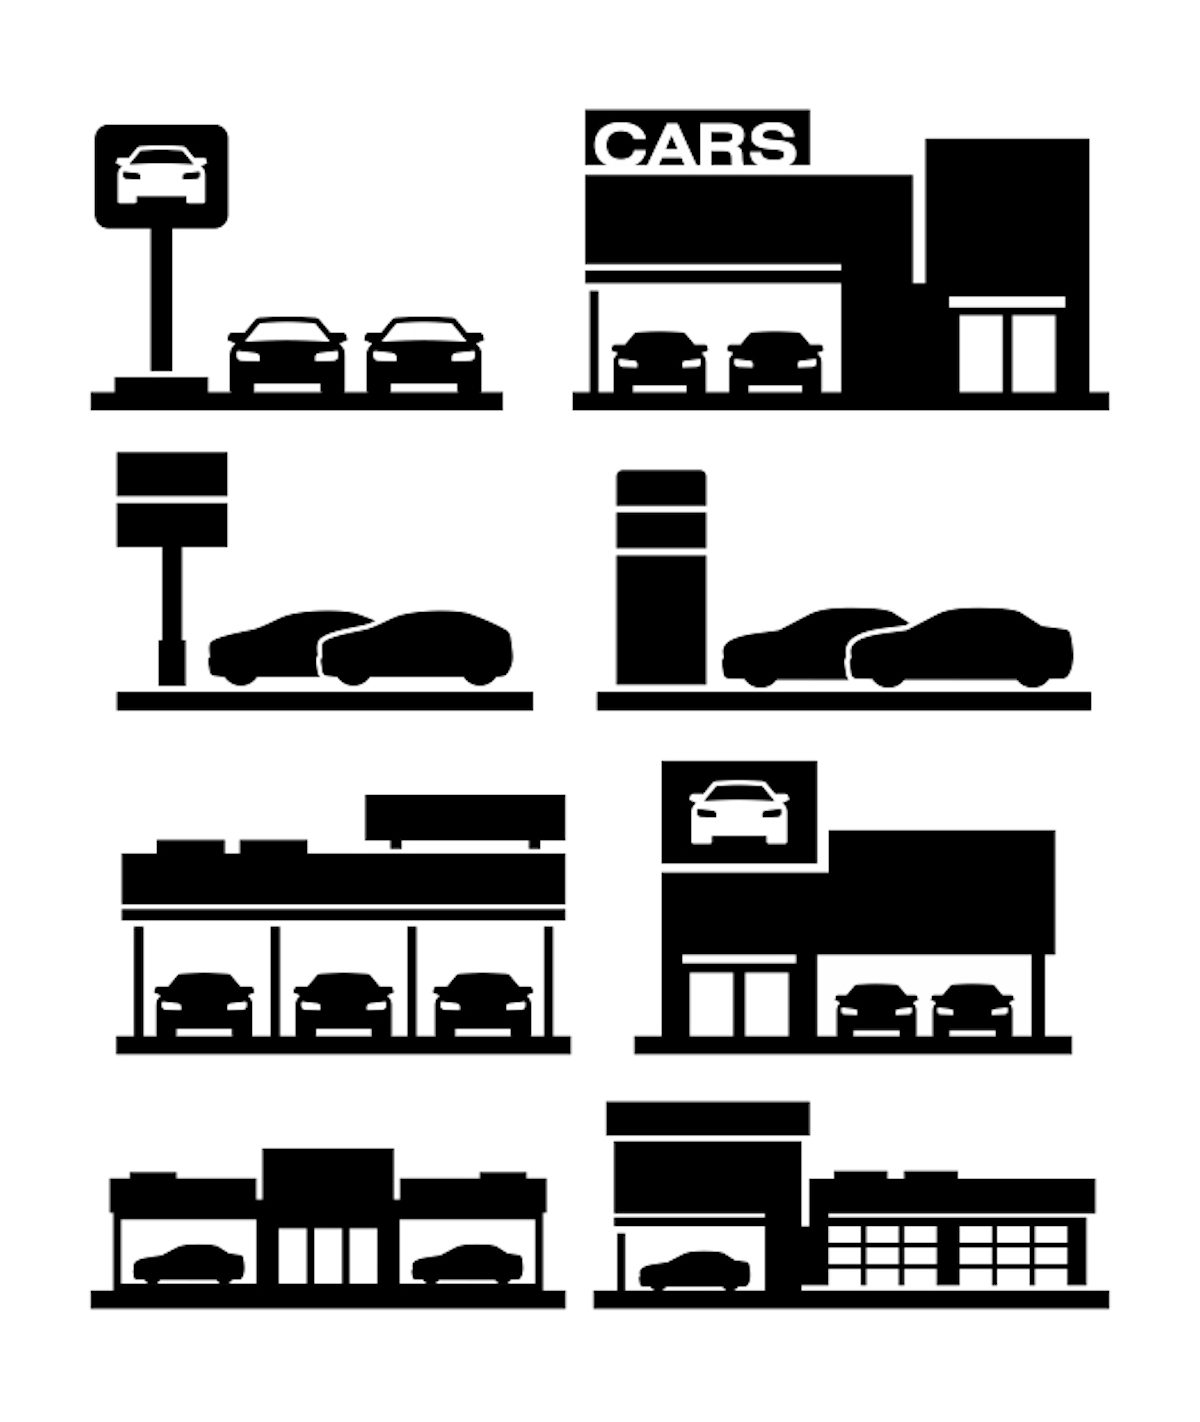 way-over-lease-miles-store-your-car-3.jpg